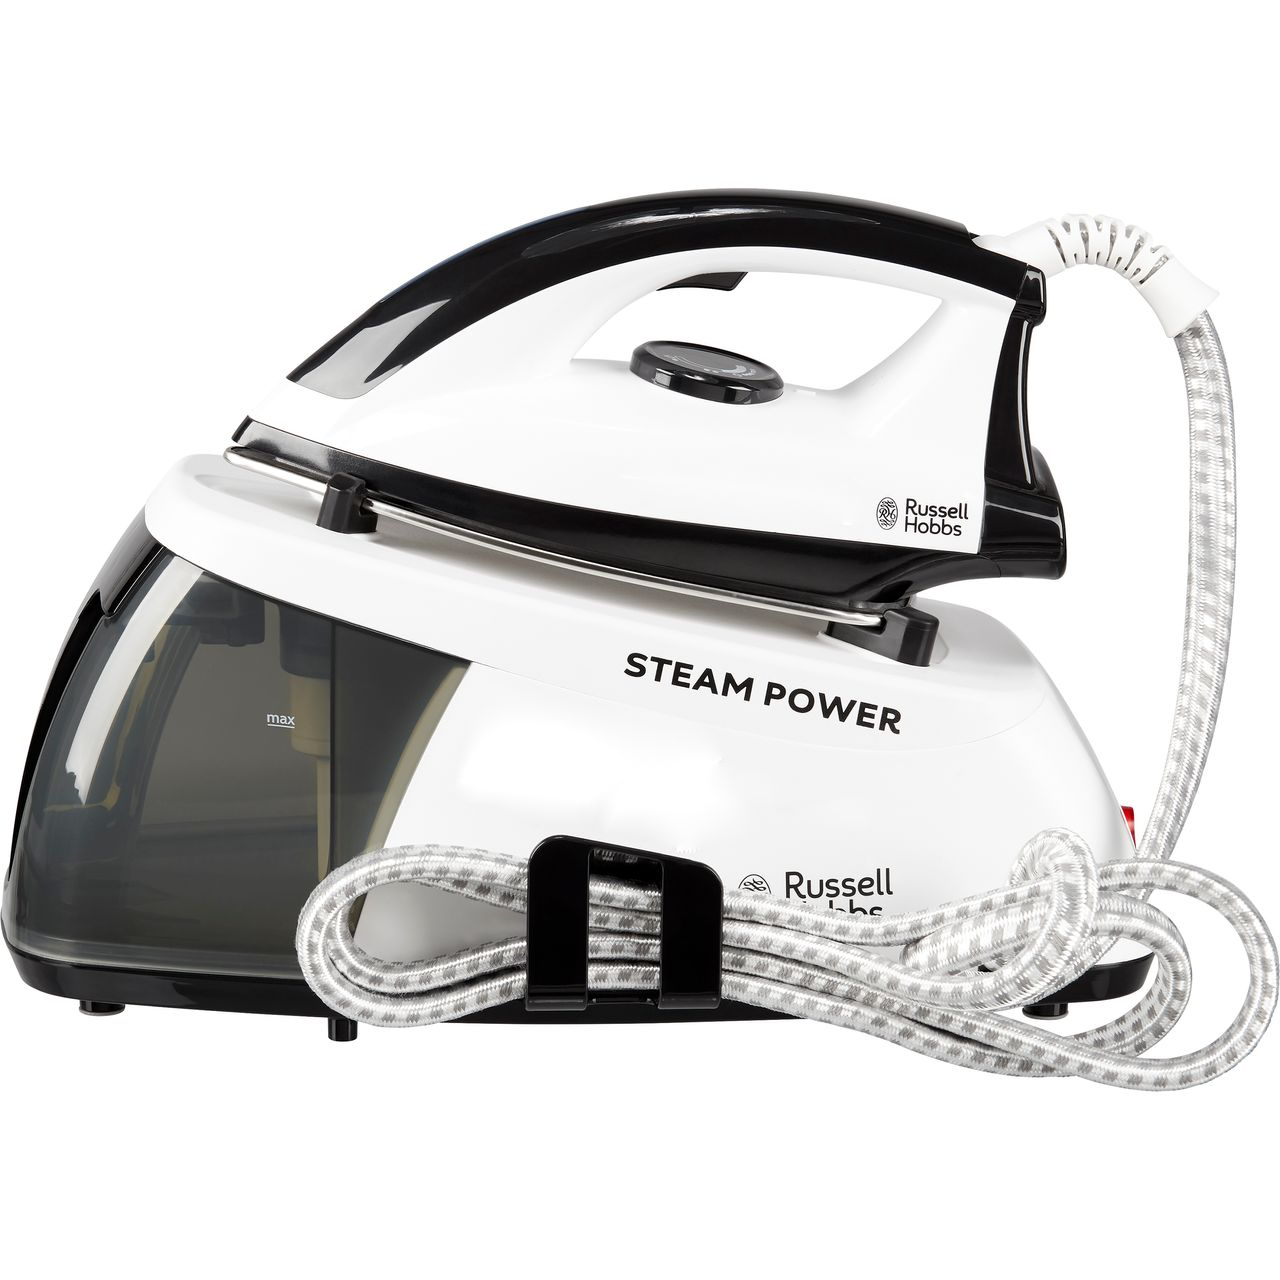 Russell Hobbs Pressurised Steam Generator Iron - Black / White